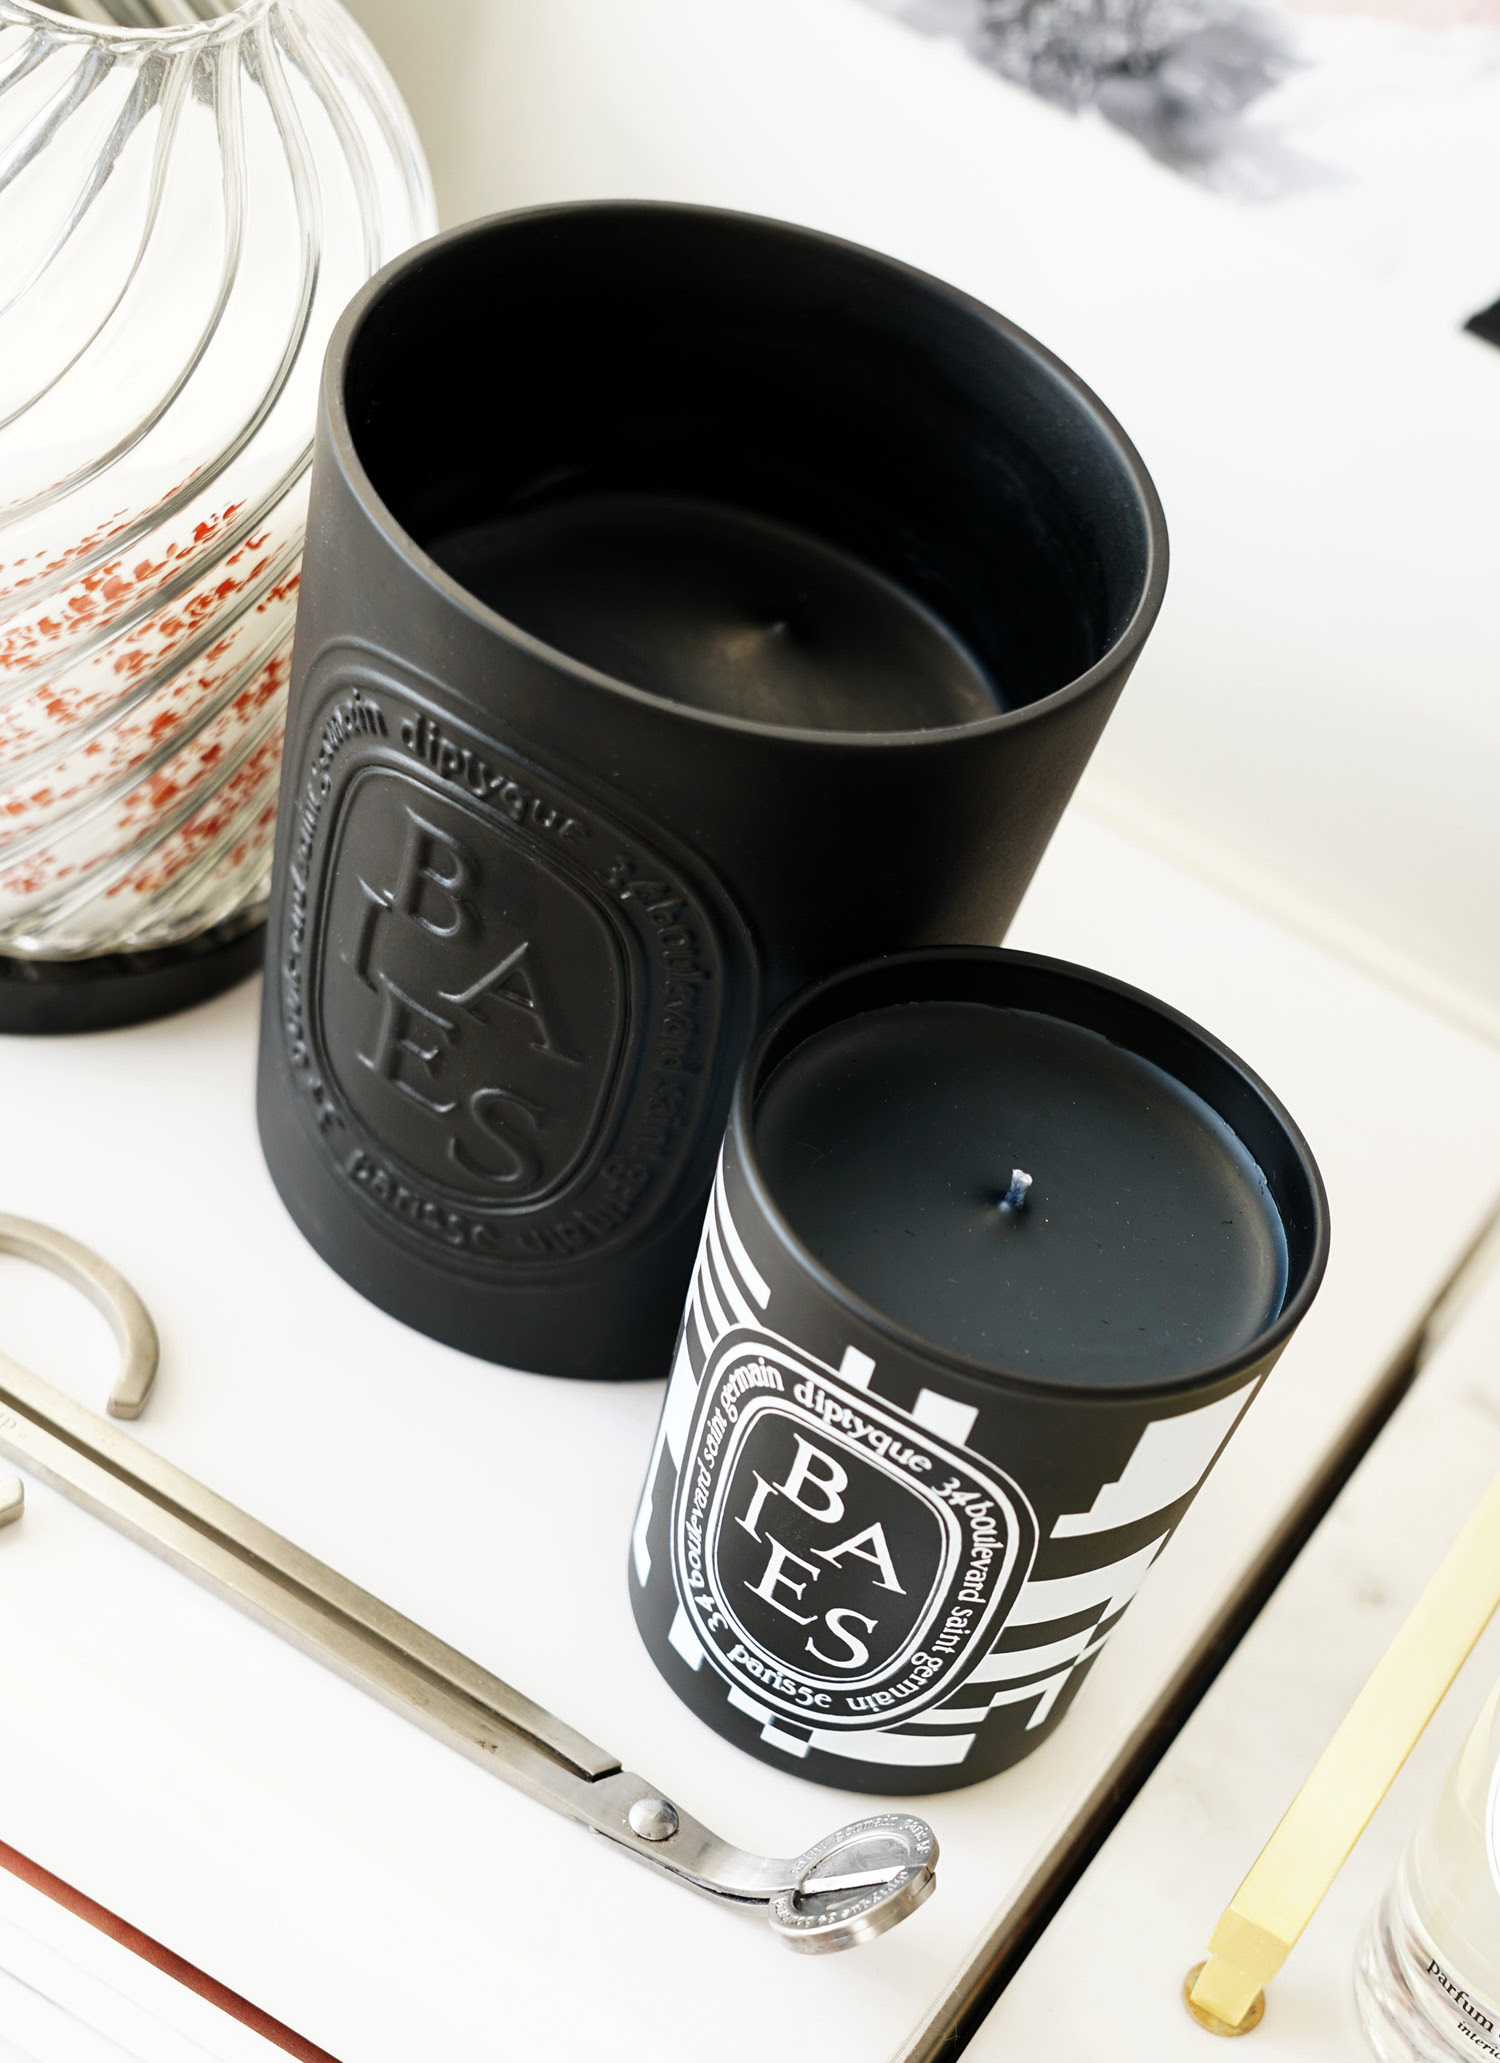 Diptyque Black Friday Baies Candle 2018 Edition | The ...